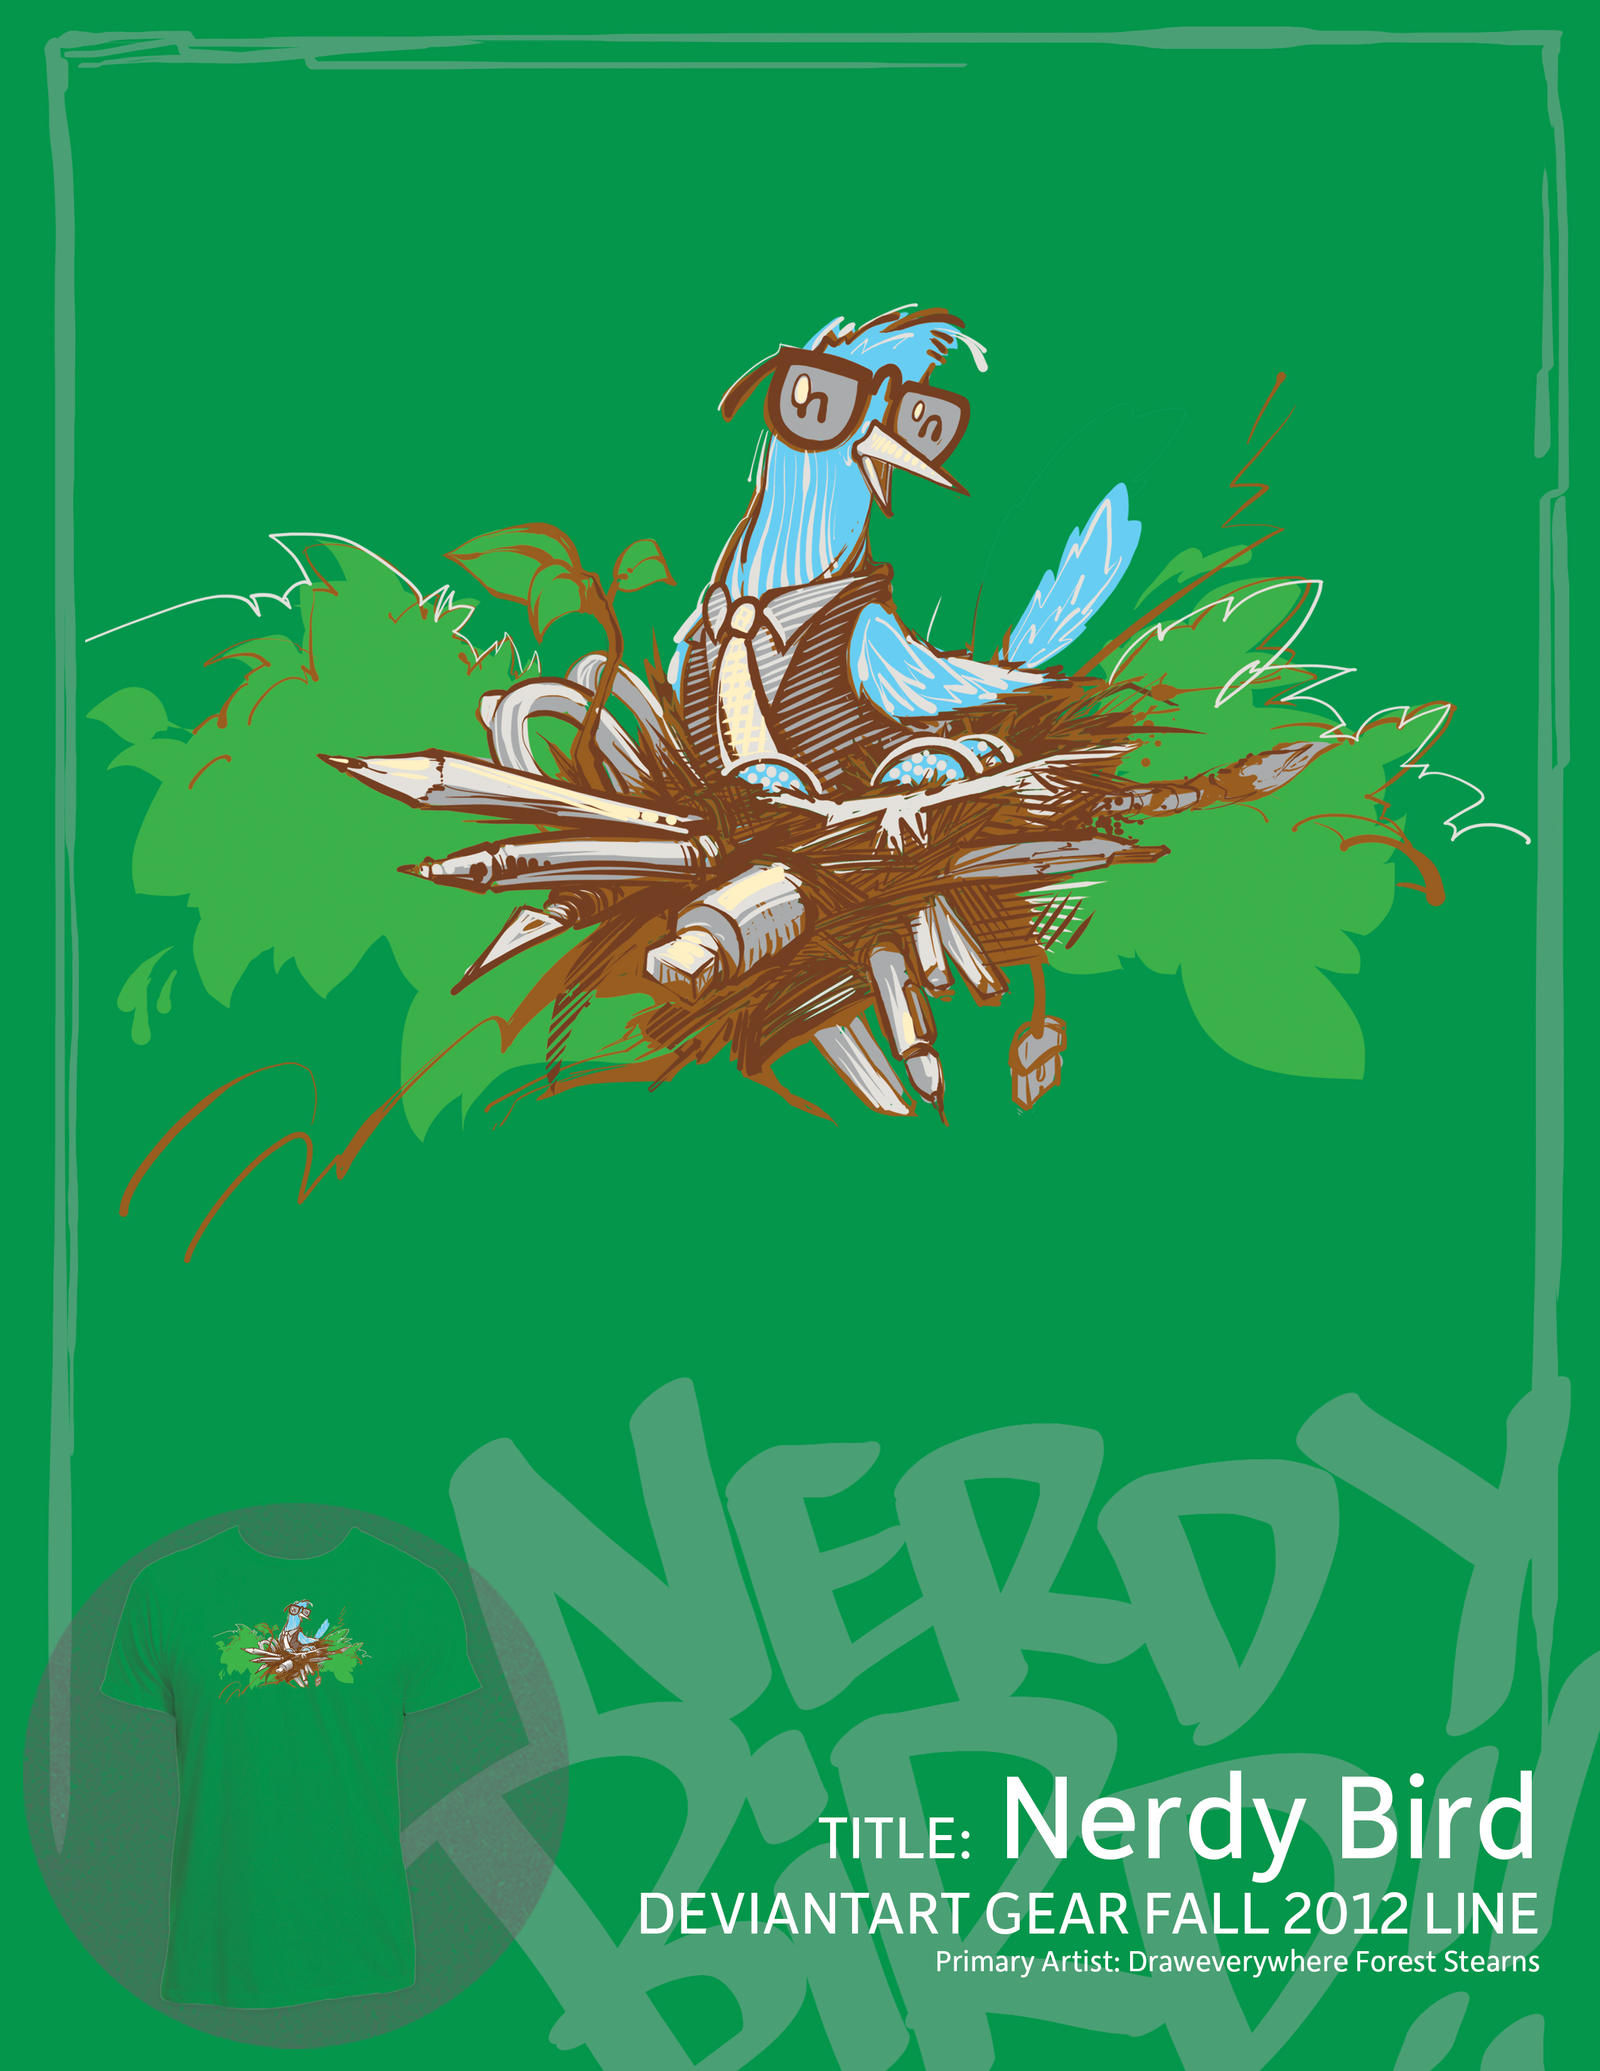 Nerdy Bird by draweverywhere